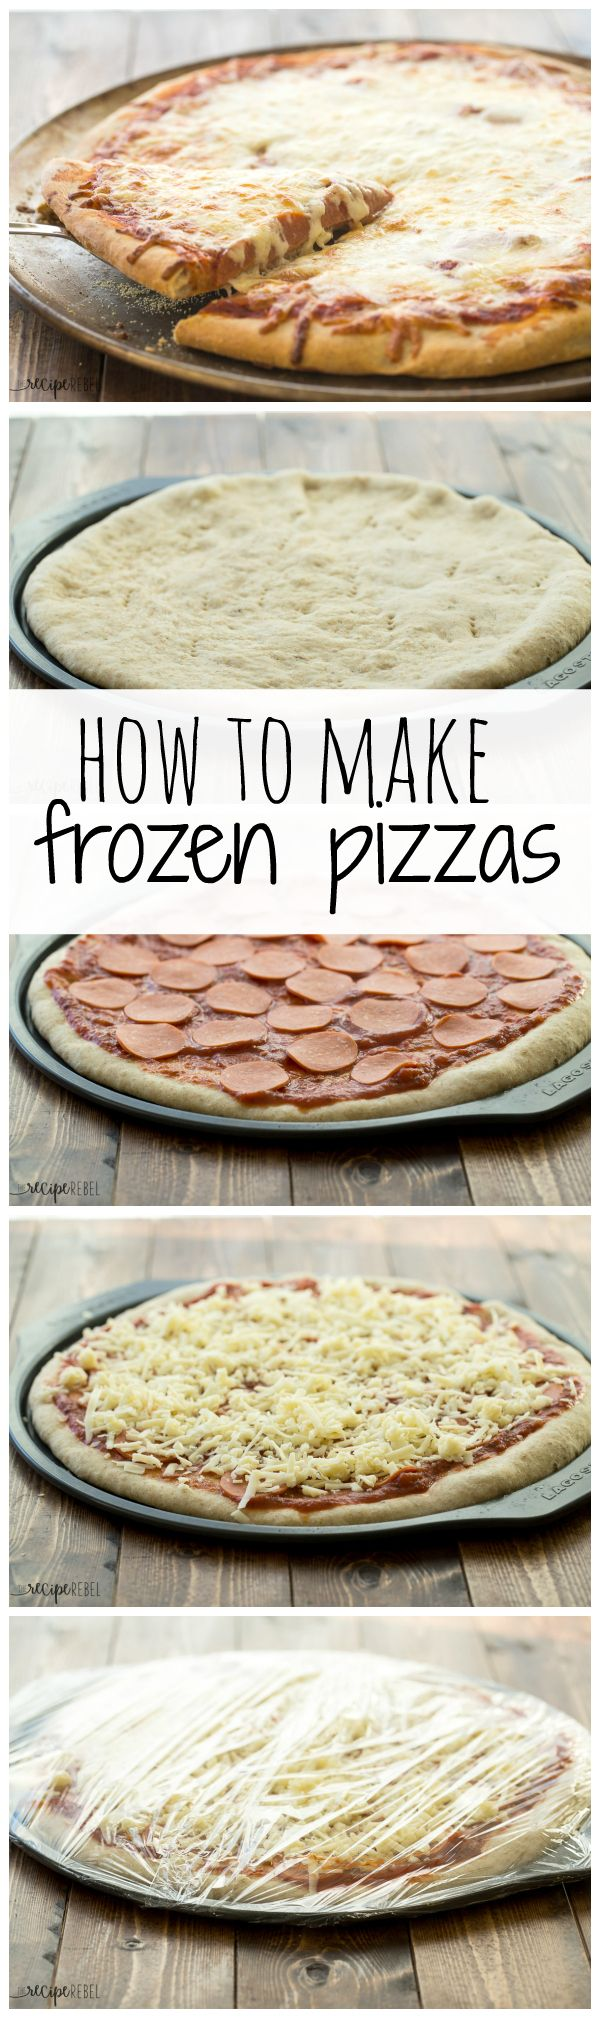 Step by step guide to making and freezing homemade frozen pizzas so you can enjoy them later! A freezer meal the whole family will love :)